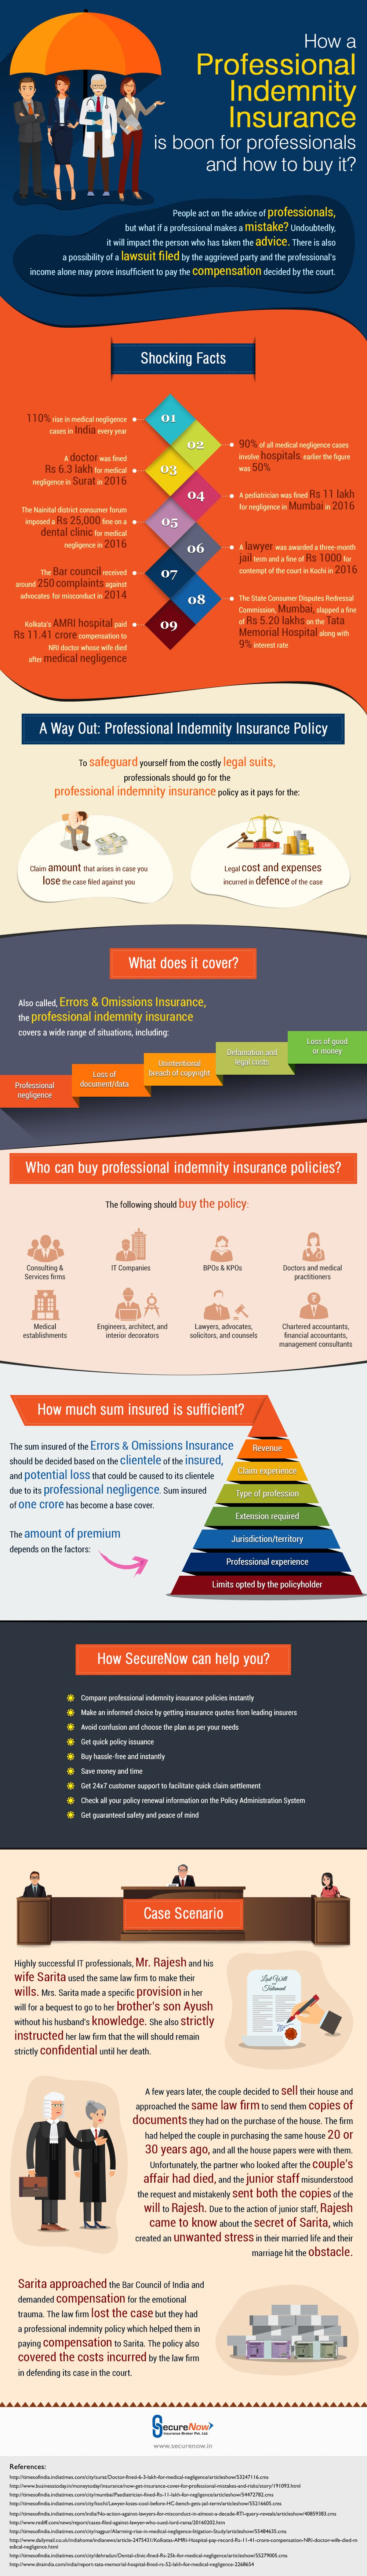 How a Professional Indemnity Insurance is Boon for ...